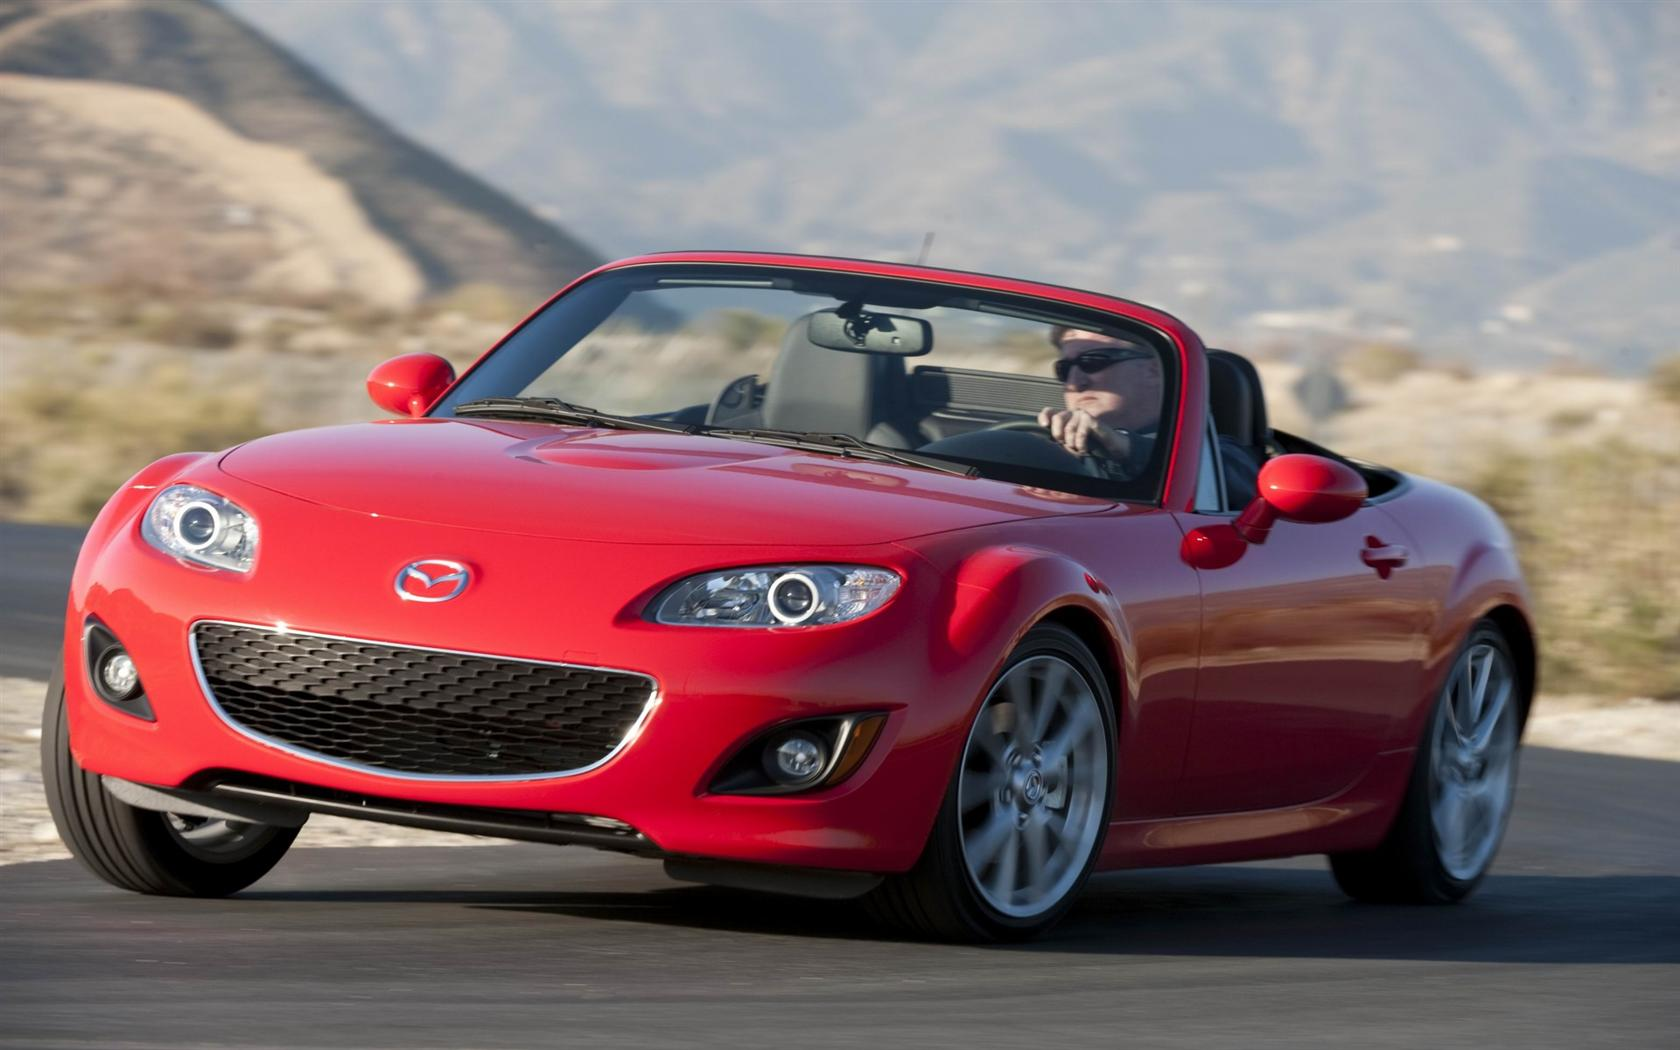 2010 Mazda Mx 5 Miata Image Https Conceptcarz Com HD Wallpapers Download free images and photos [musssic.tk]